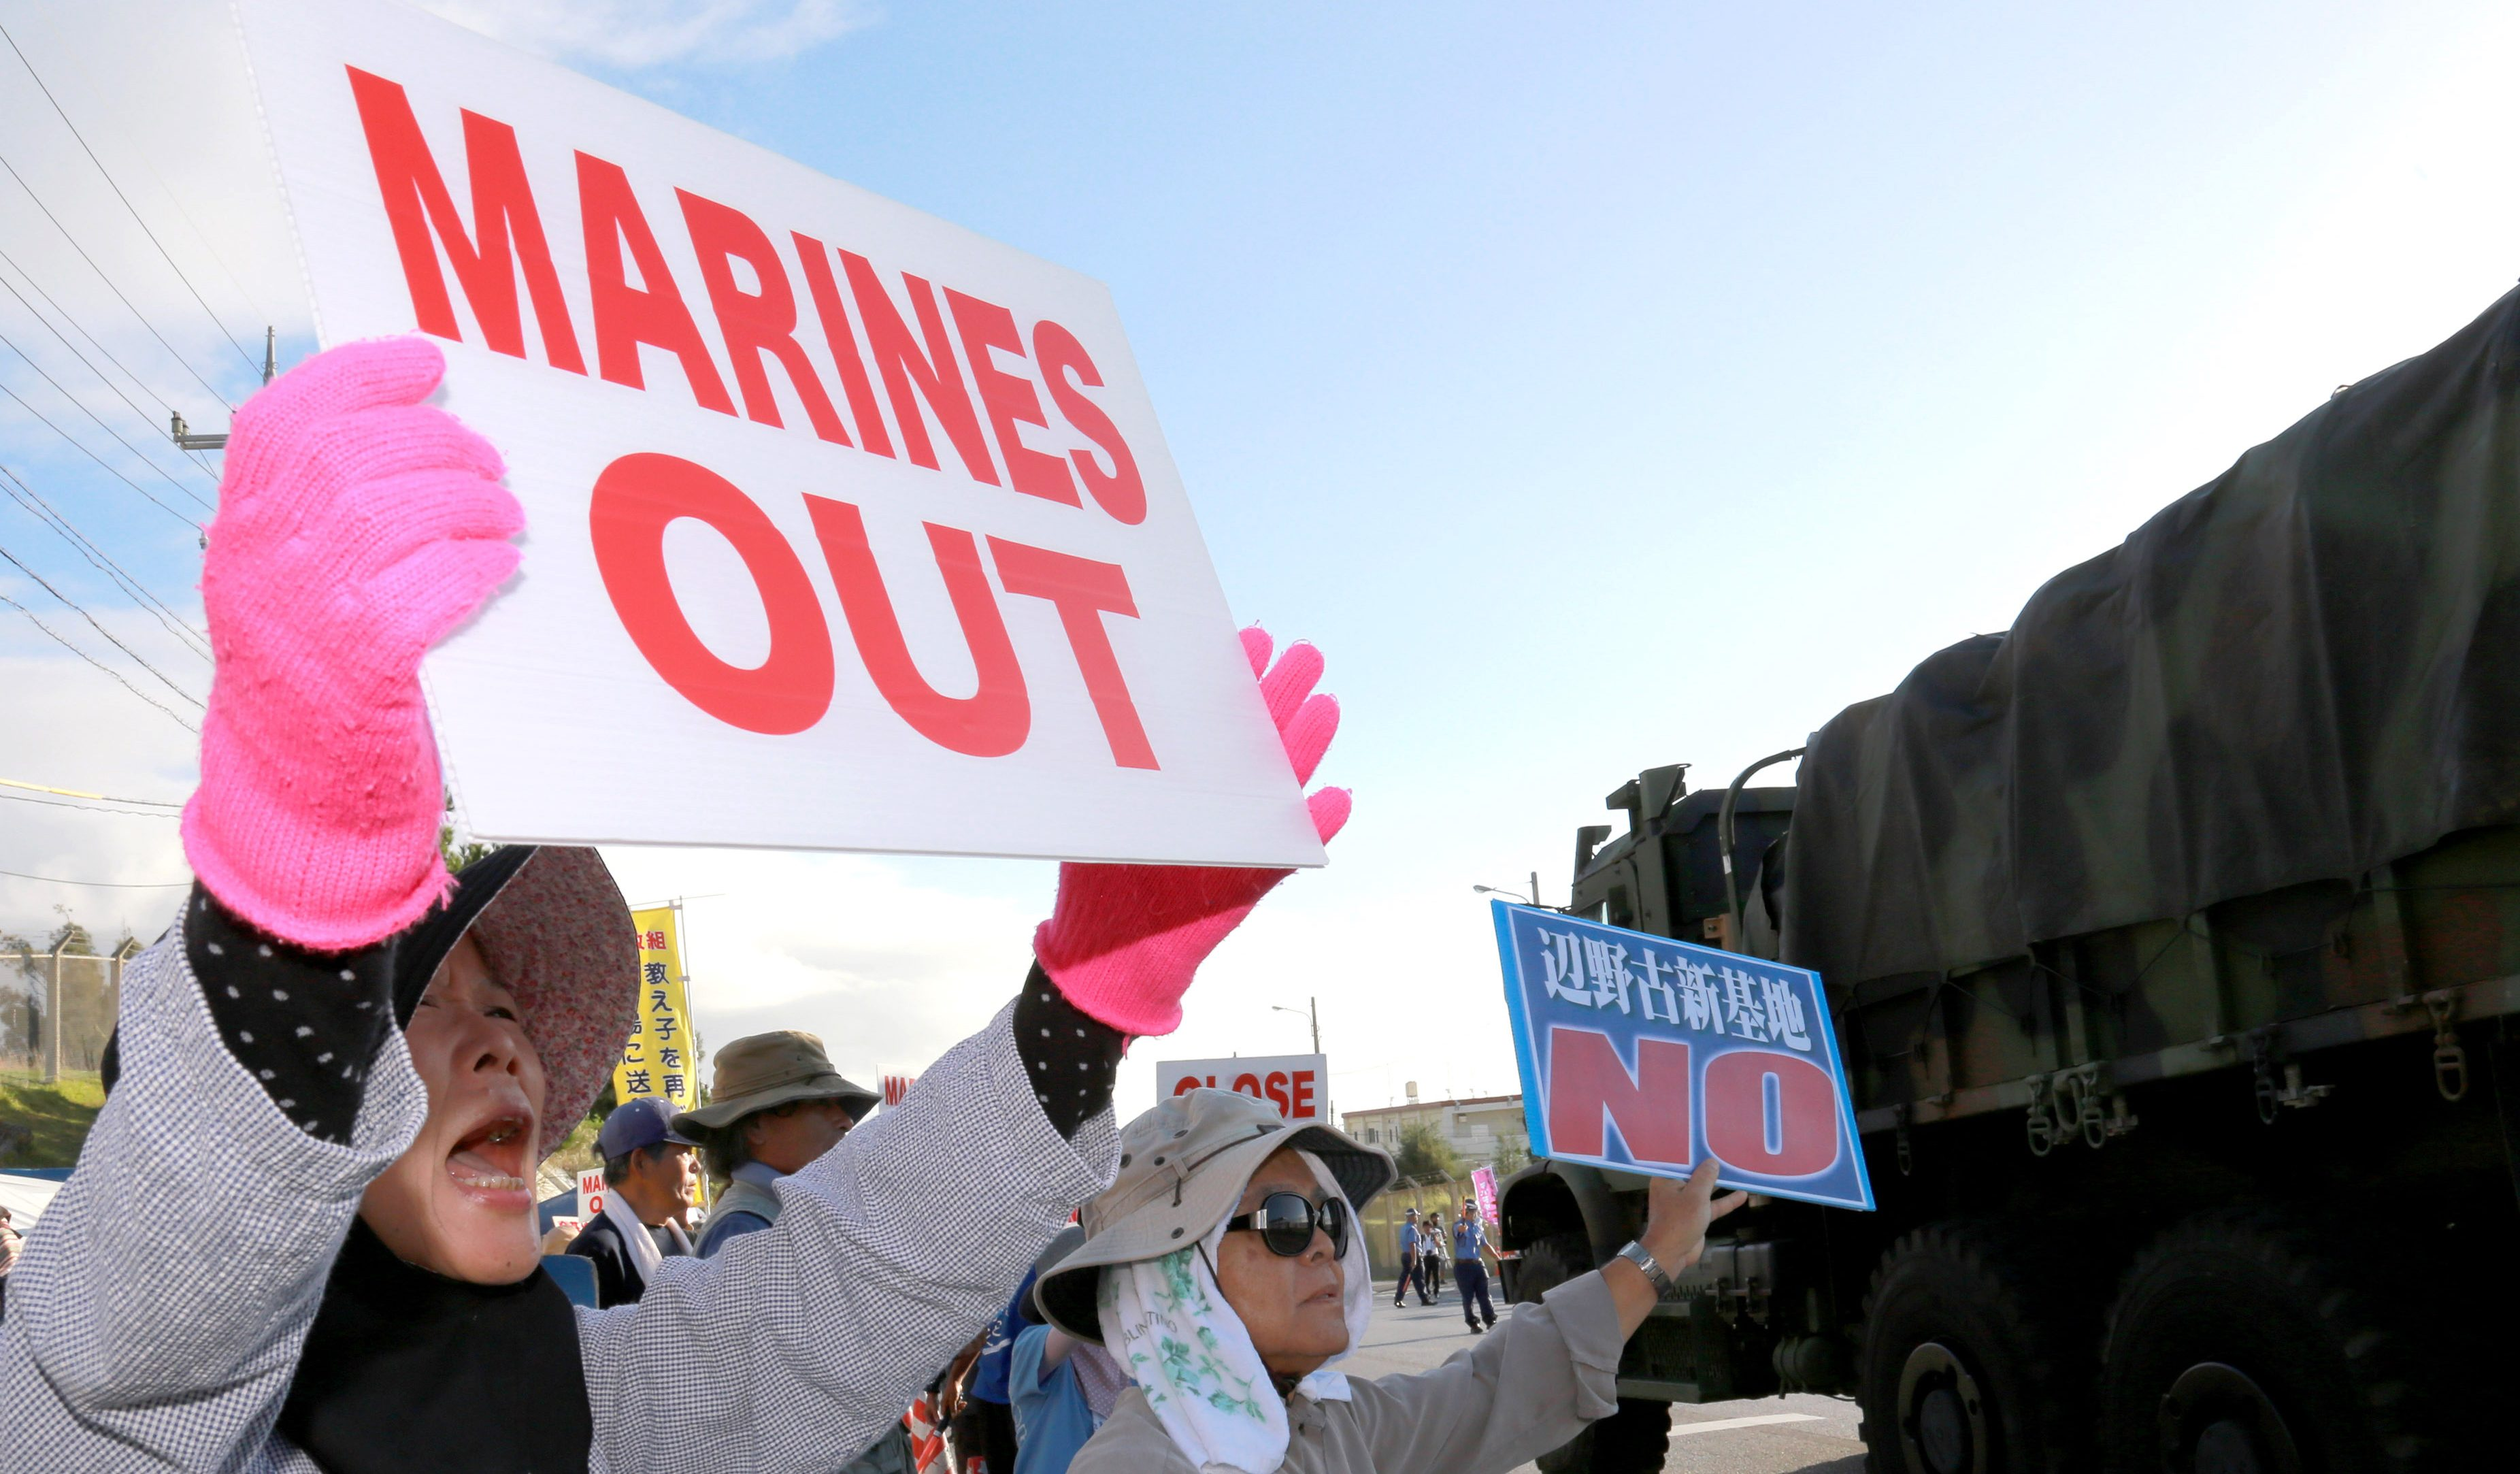 Okinawa residents protest against relocation US base within their island